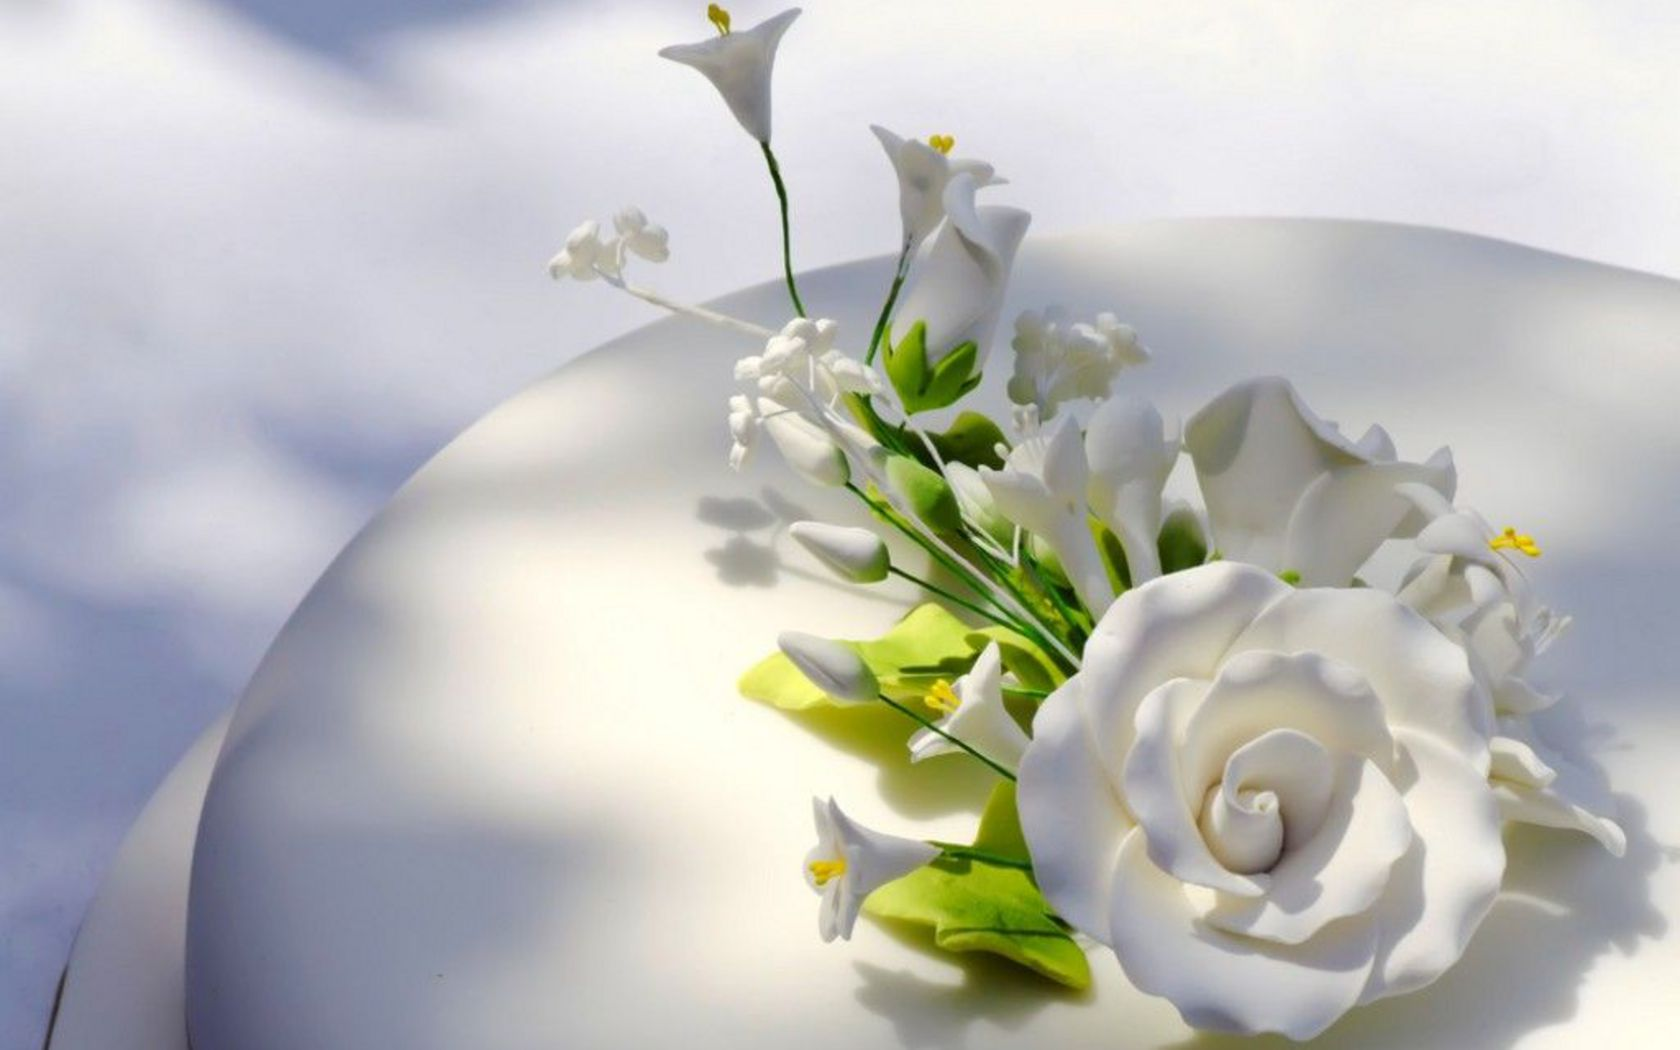 White Roses Wallpaper Hd Tumblr For Walls Mobile Phone Widescreen Desktop Full Size Download 2013